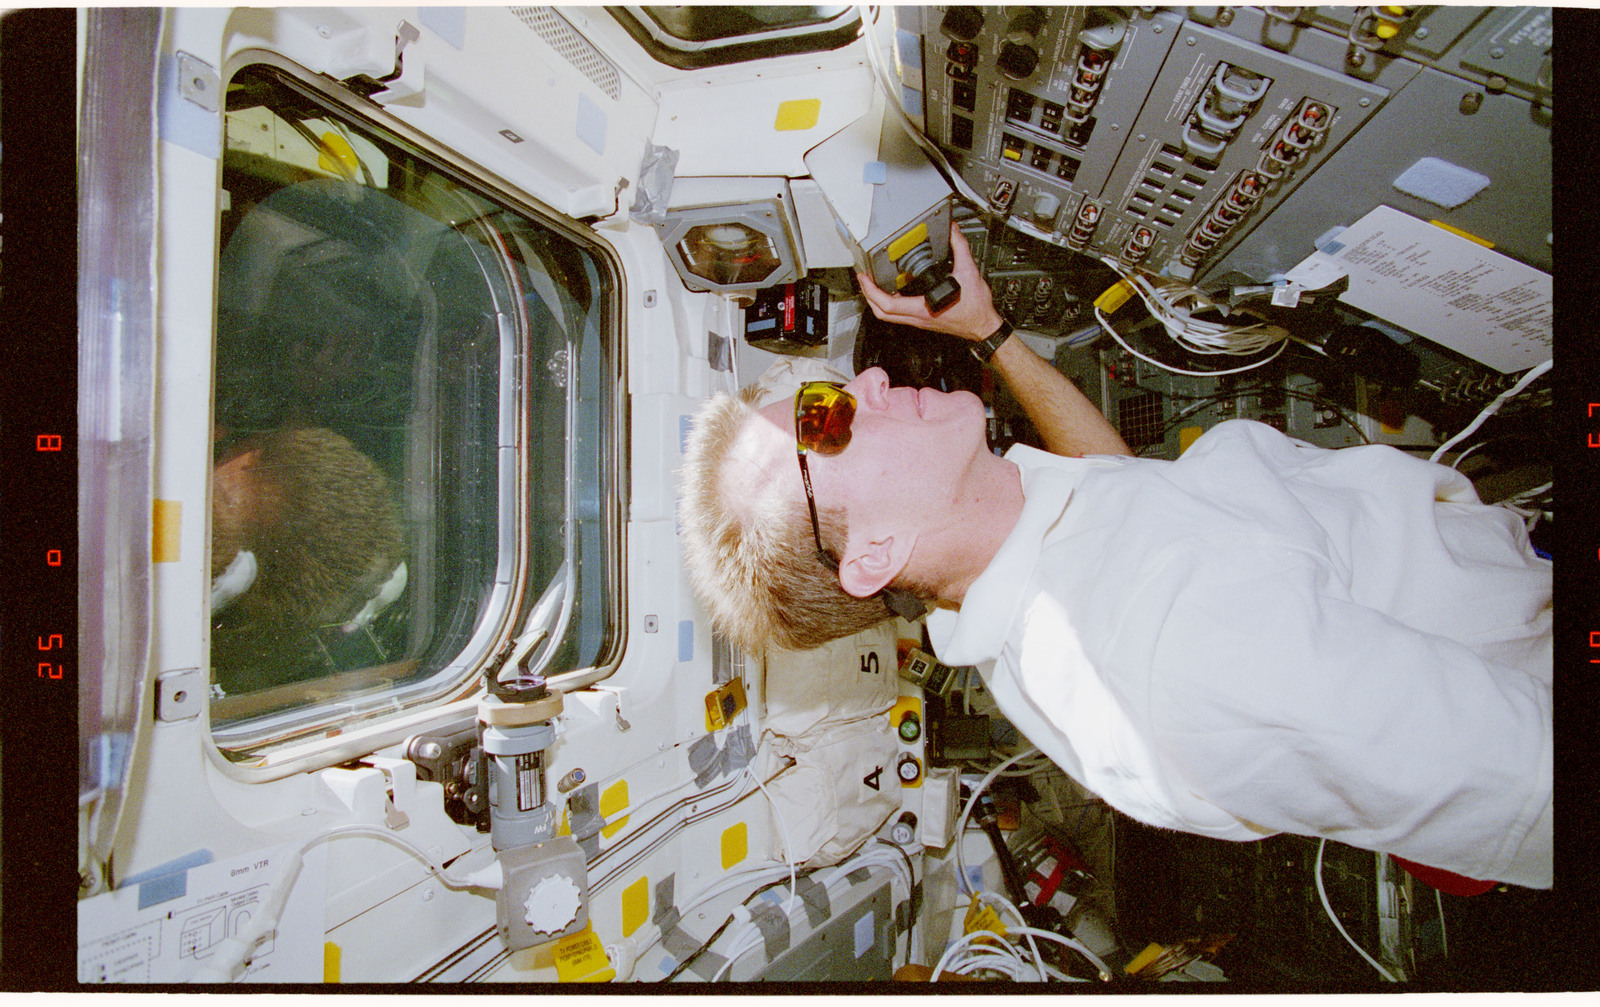 STS081-311-033 - STS-081 - STS-81 crew activities during undocking with Mir space station